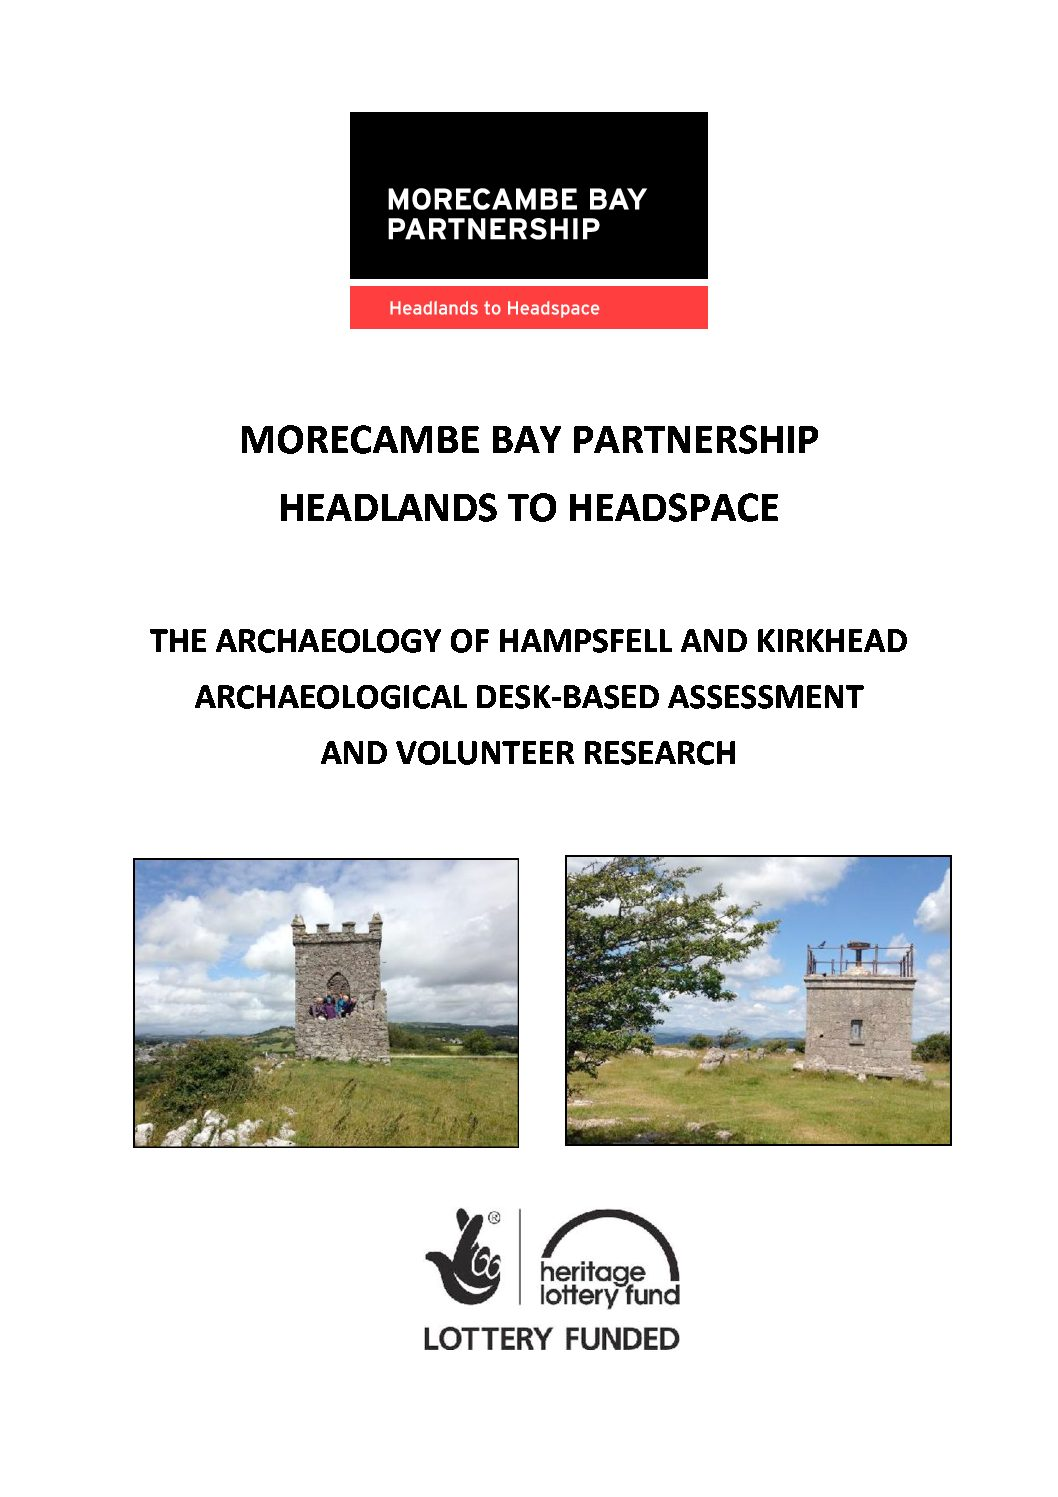 The Archaeology of Hampsfell Hospice and Kirkhead Tower Desk-Based Assessment and Volunteer Research